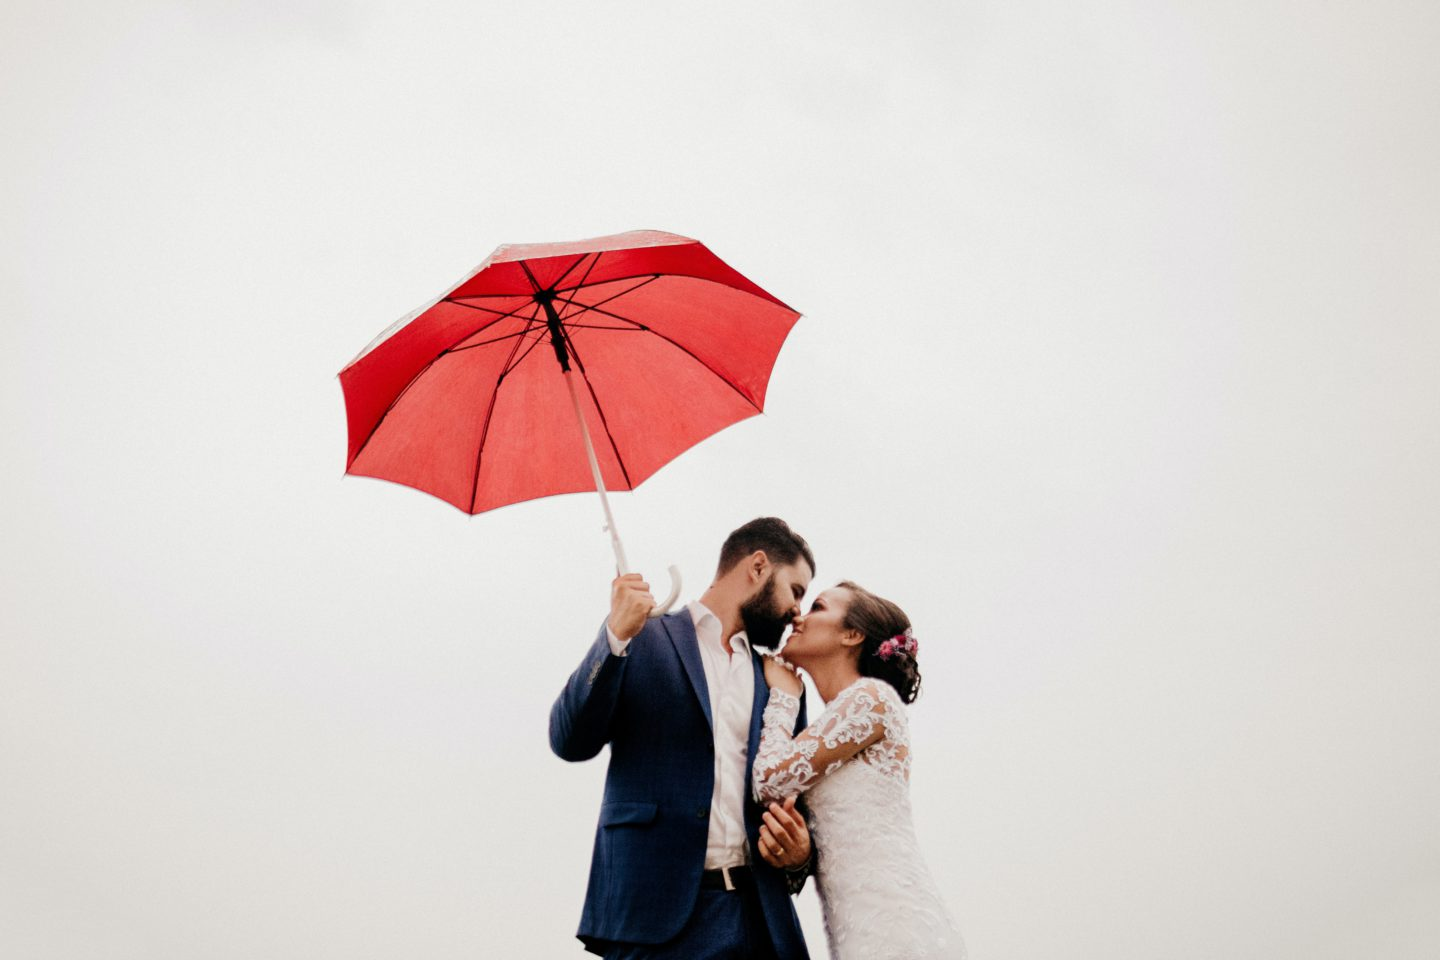 man and woman under red umbrella